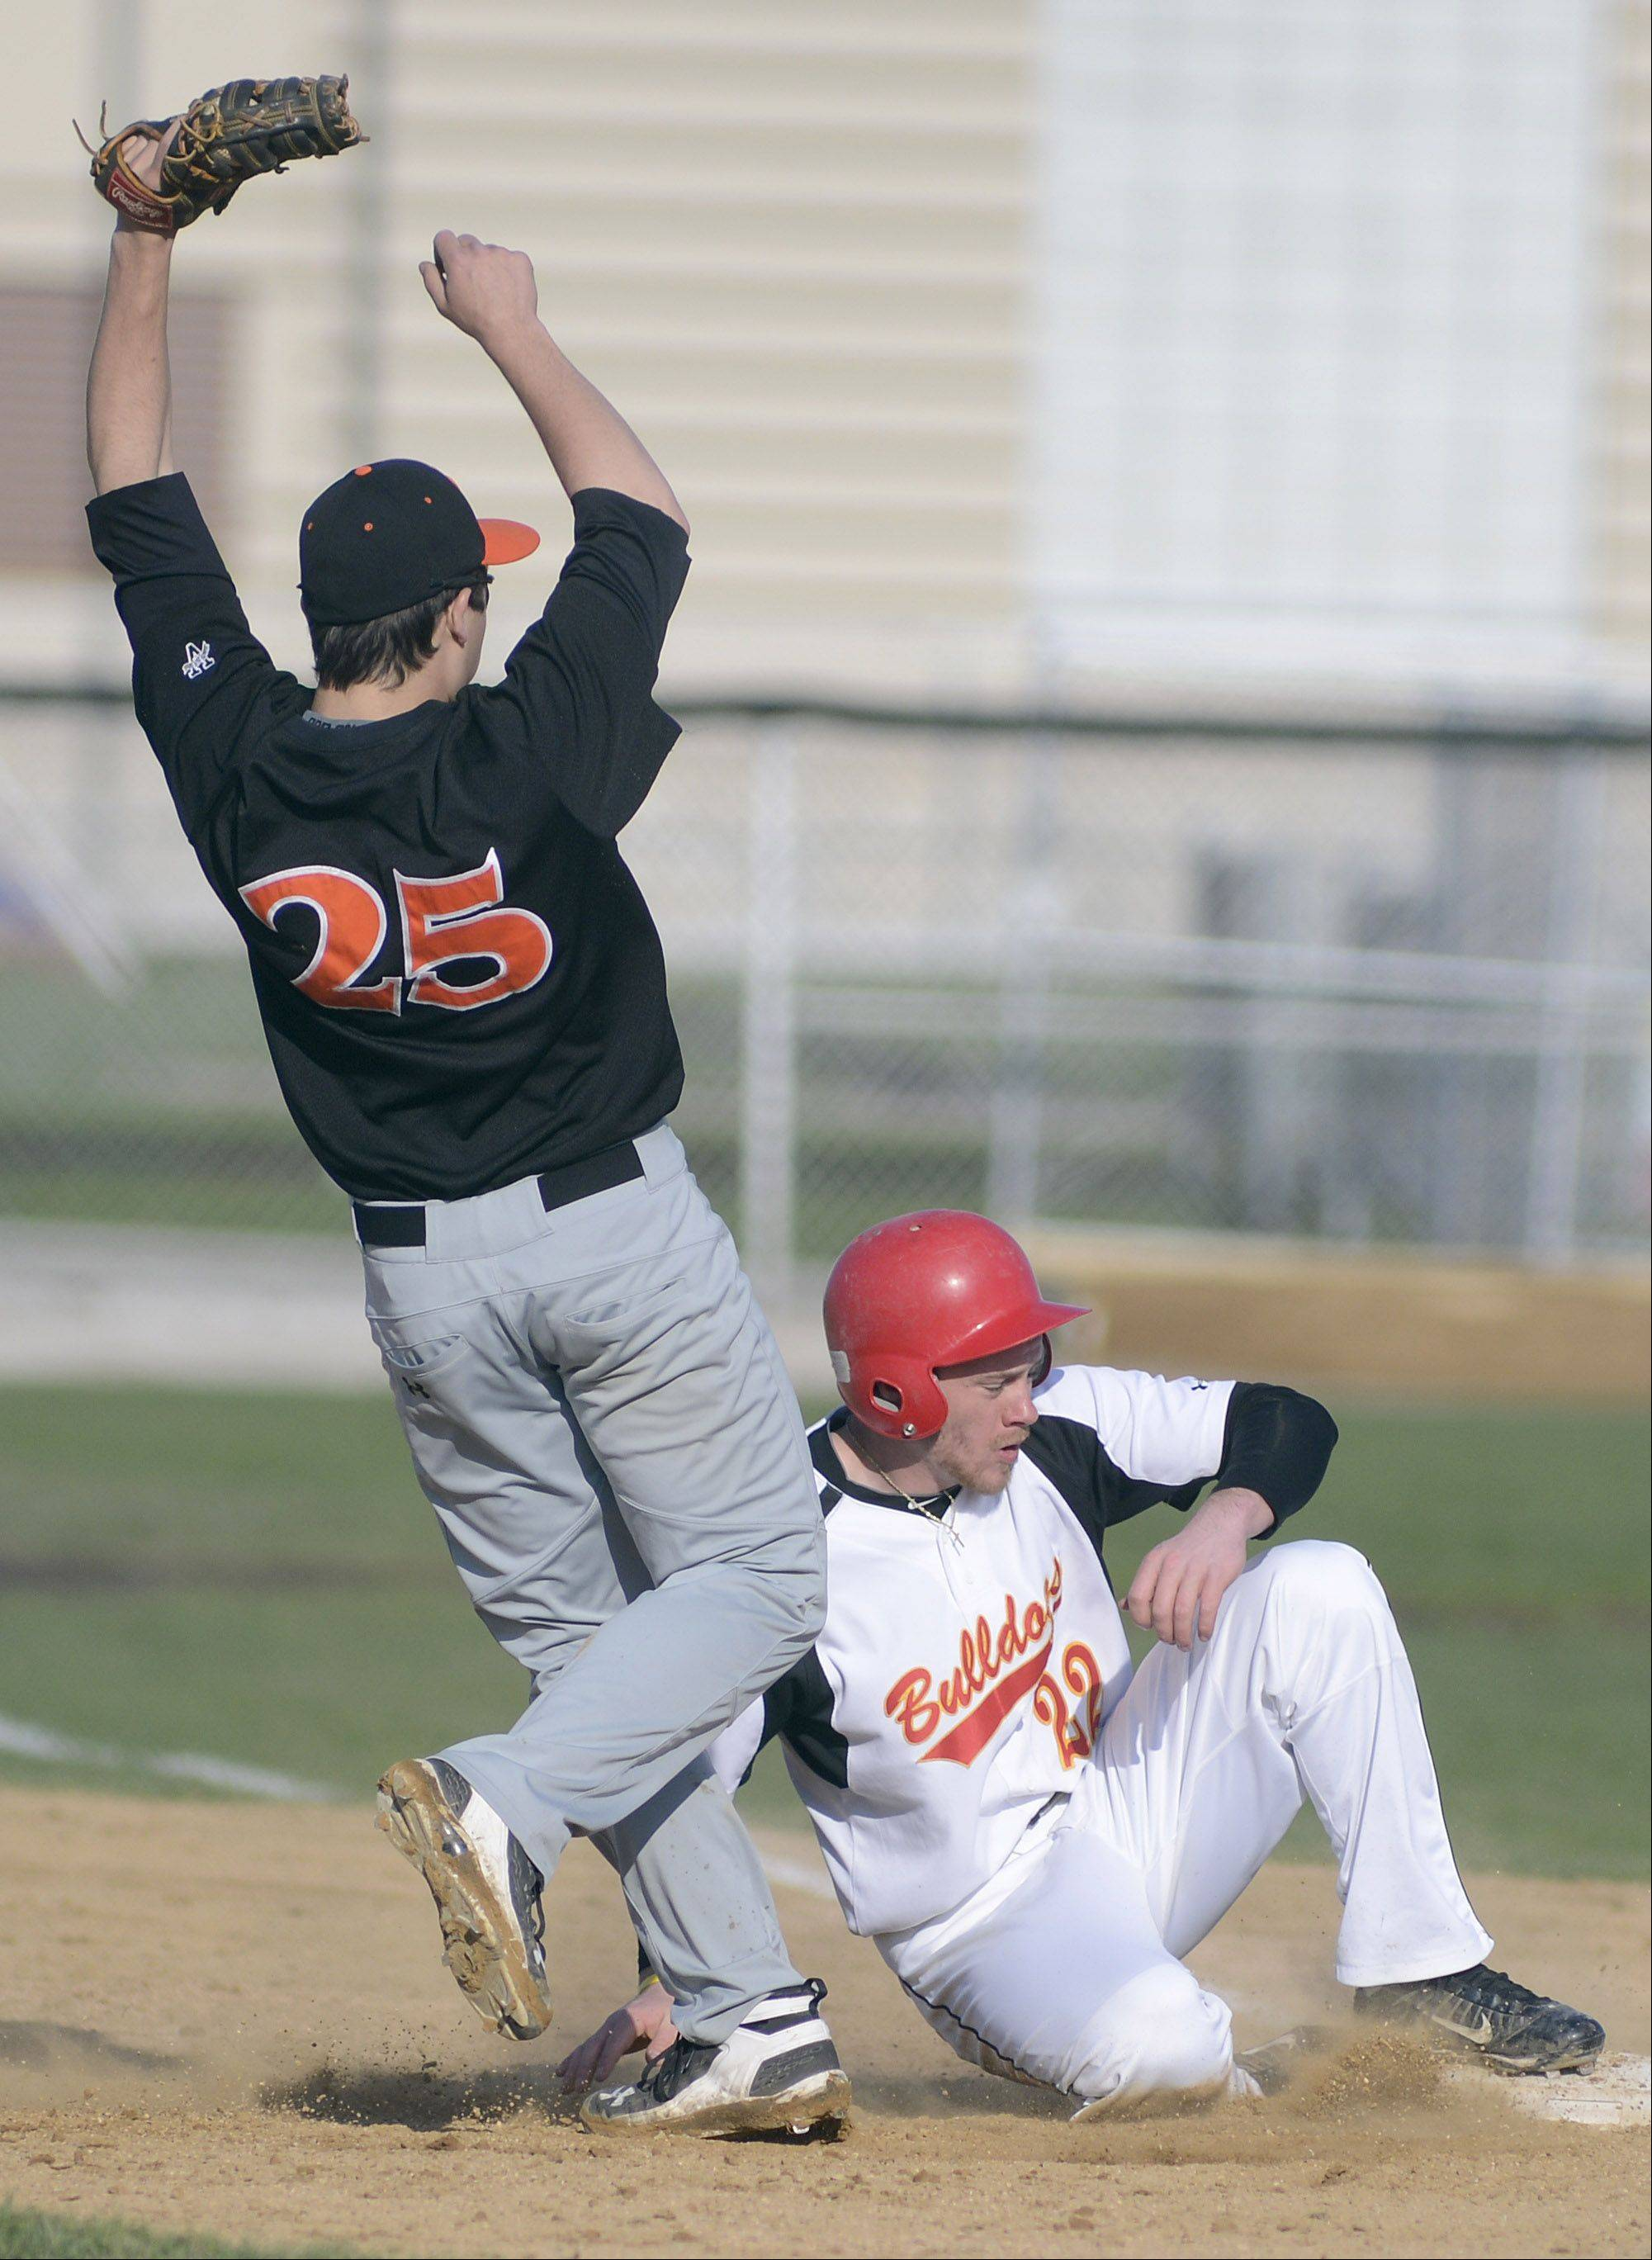 Batavia's Robbie Bowman slides into second base after being tagged out by St. Charles East's Brian Sobieski, ending a chase between first and second bases in the fourth inning on Wednesday, April 24.